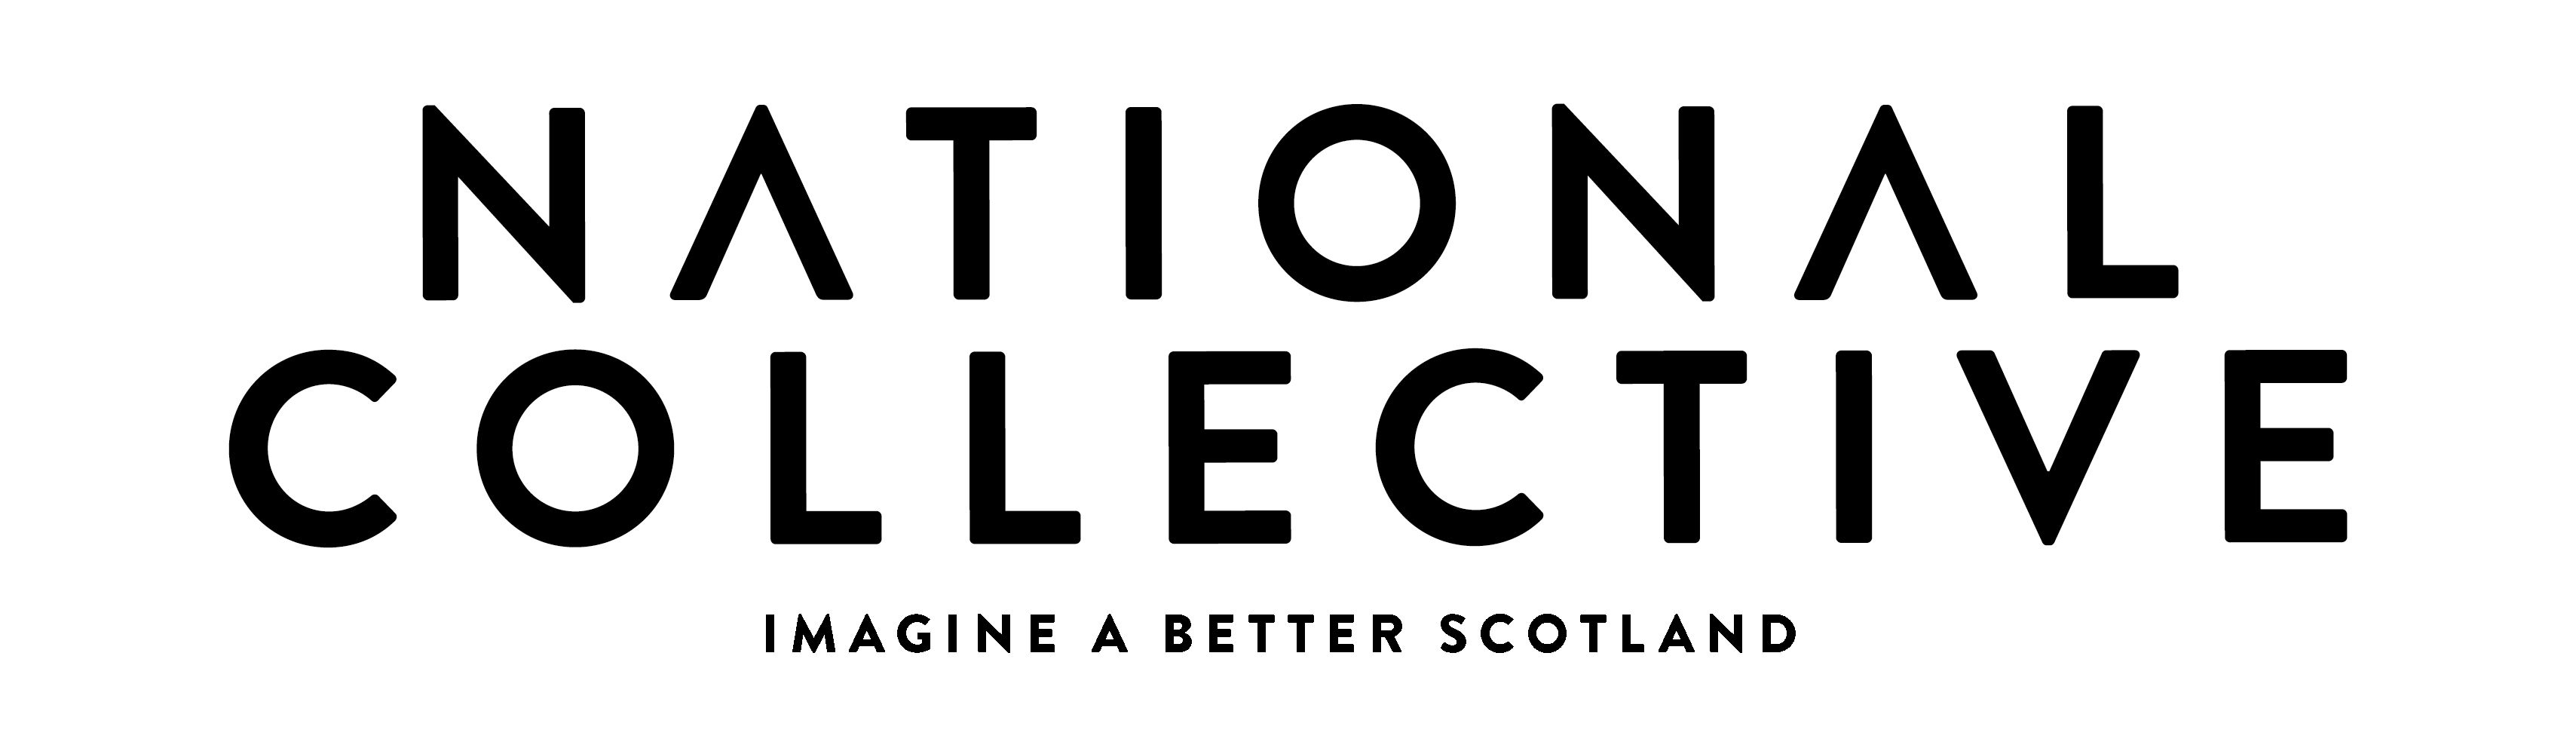 Header National Collective Aberdeen